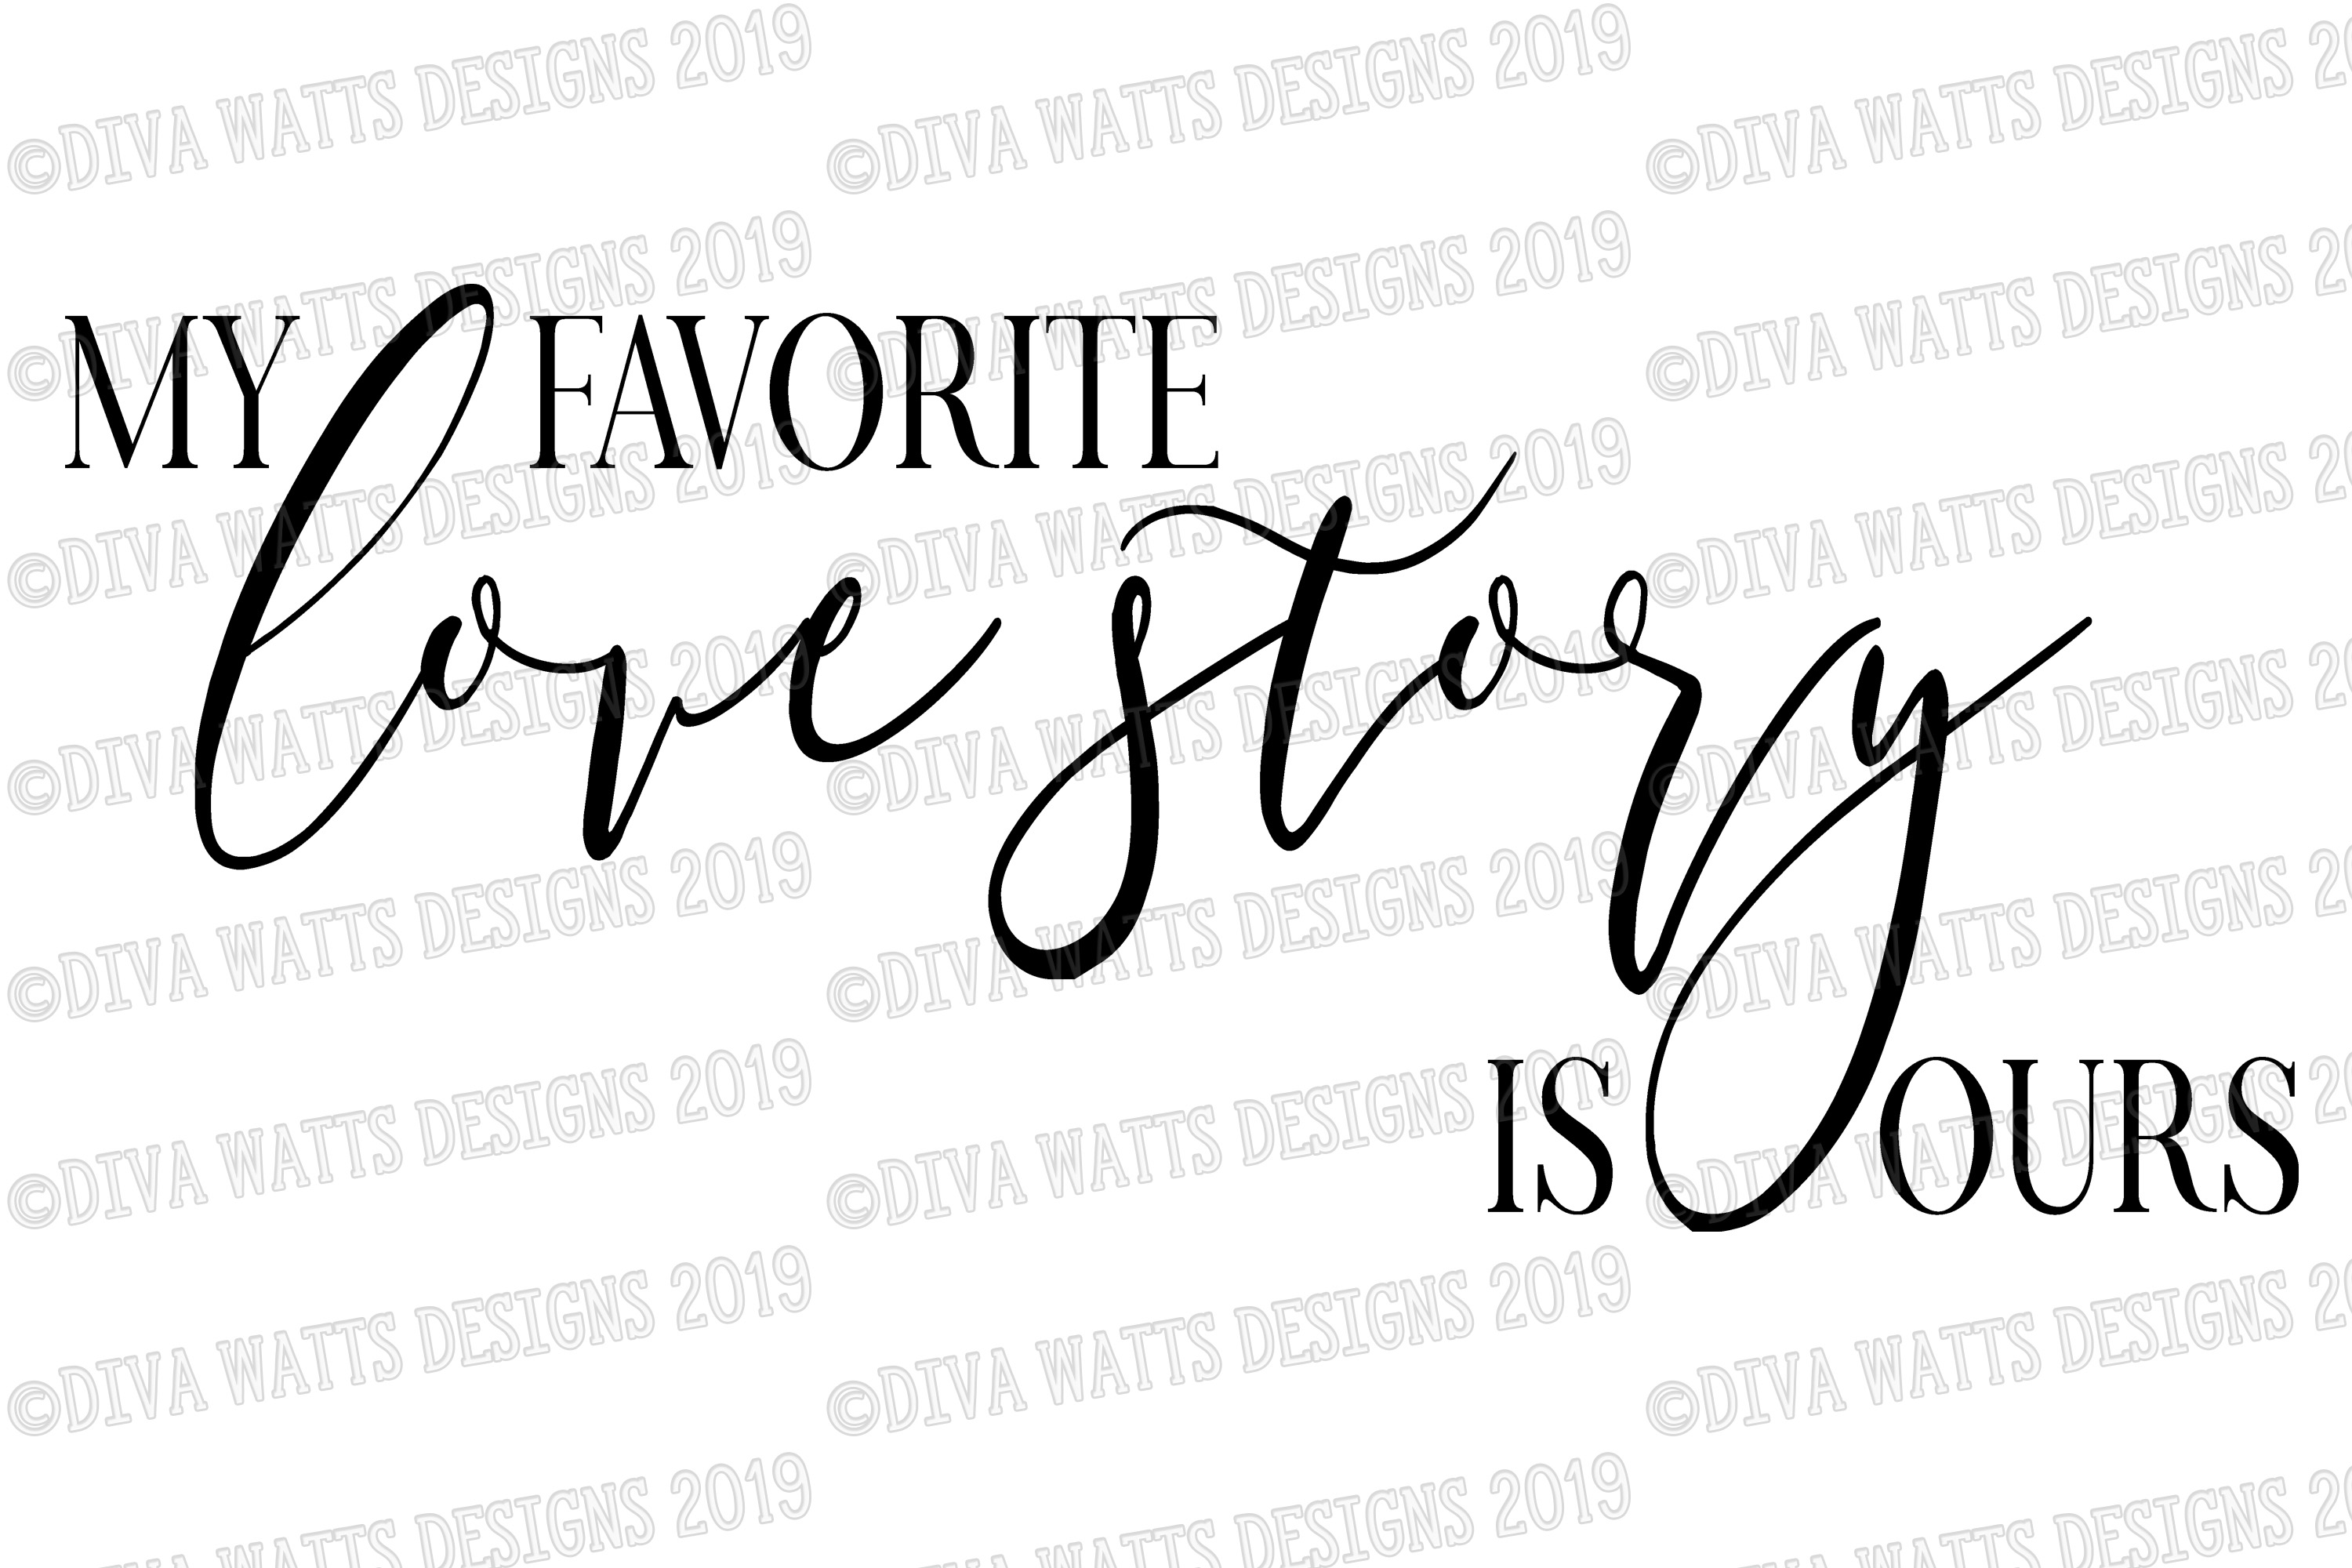 My Favorite Love Story Is Ours - Farmhouse - Cutting File example image 2